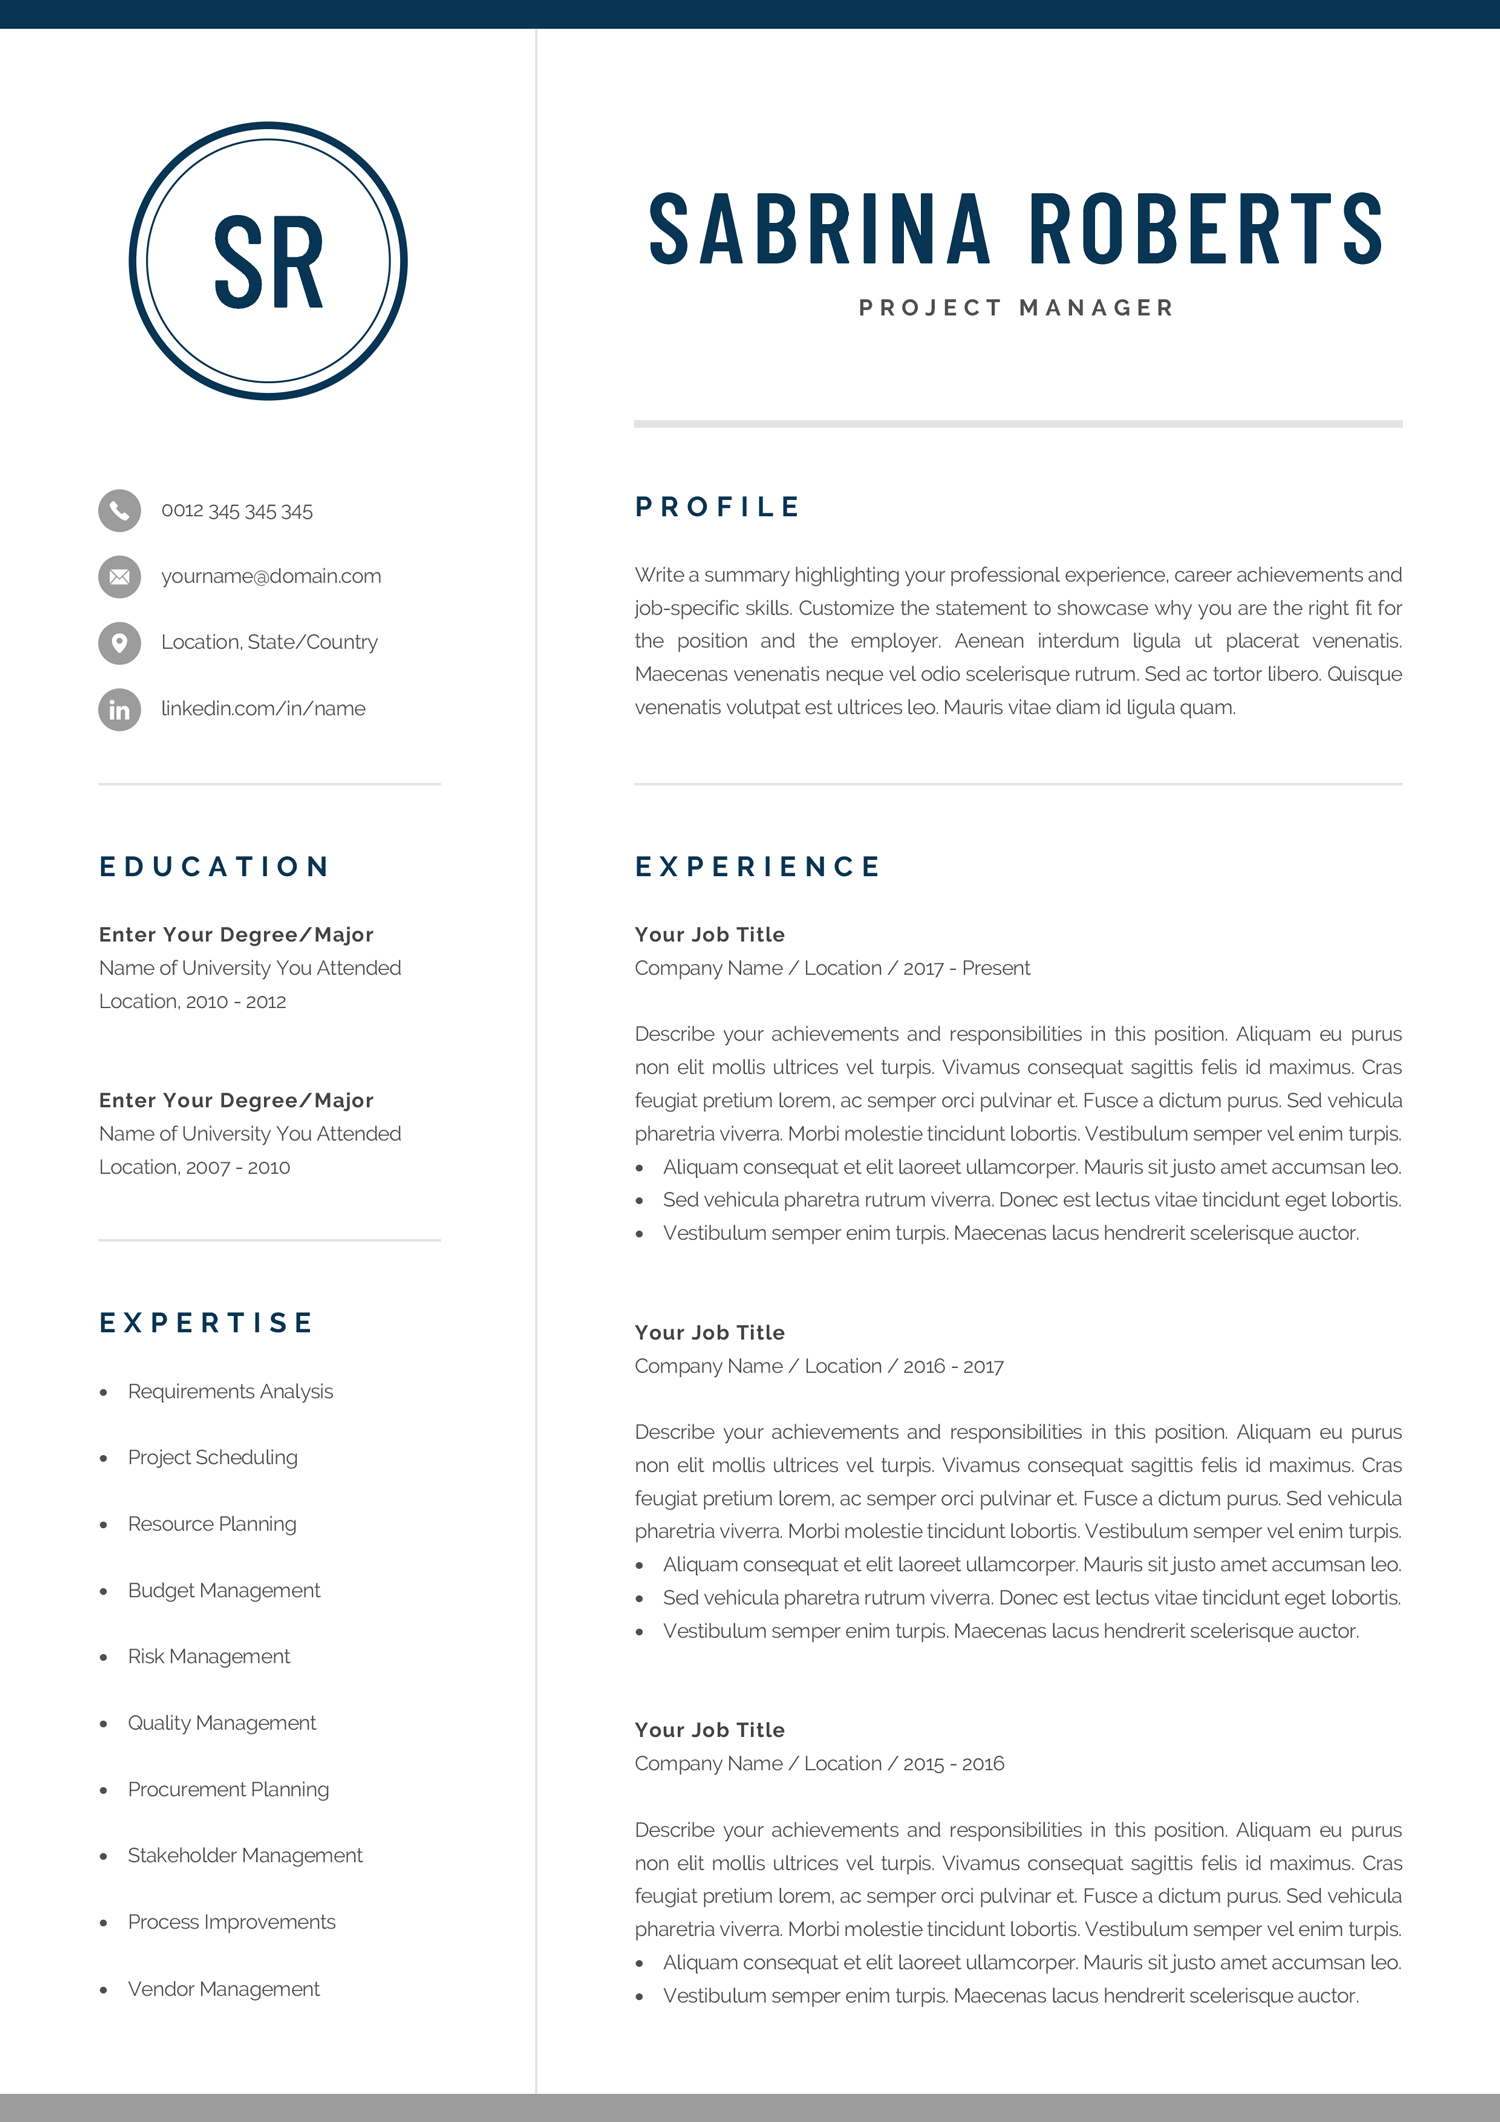 Professional Resume Template Modern Manager, Executive